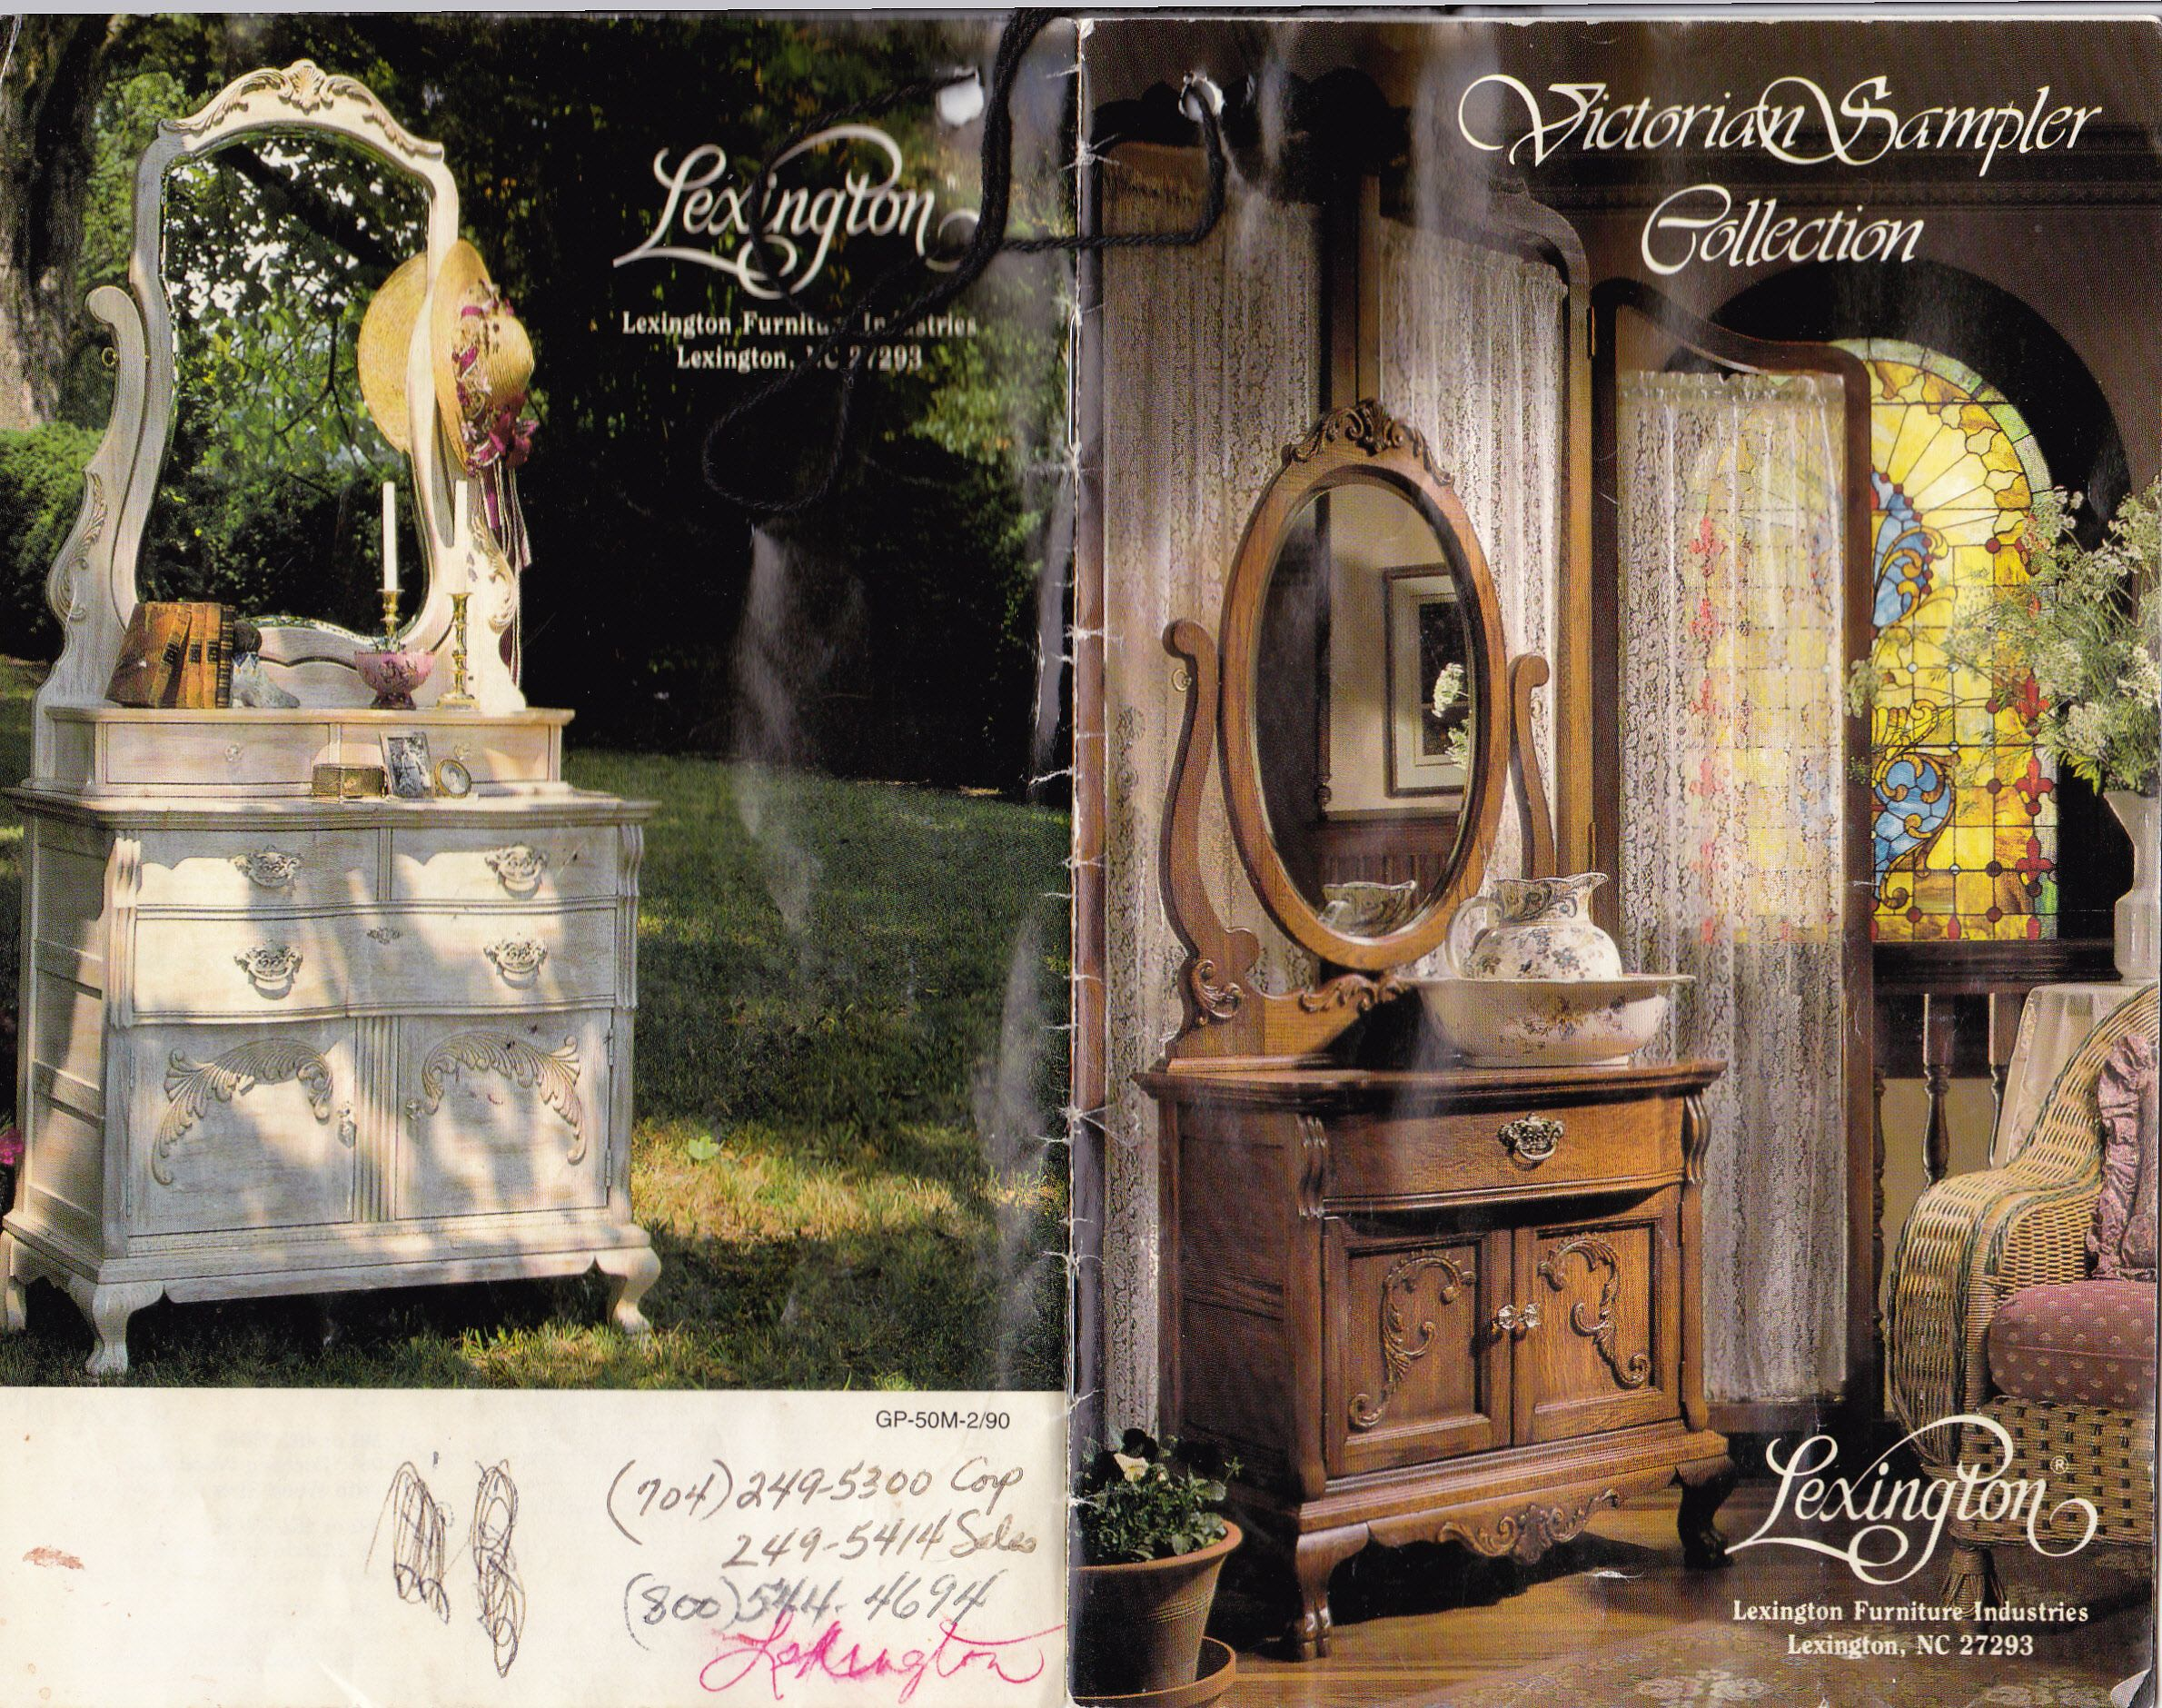 Lexington Victorian Sampler Bedroom Furniture 58 Best Images About Furniture I Sell On Pinterest Cherries